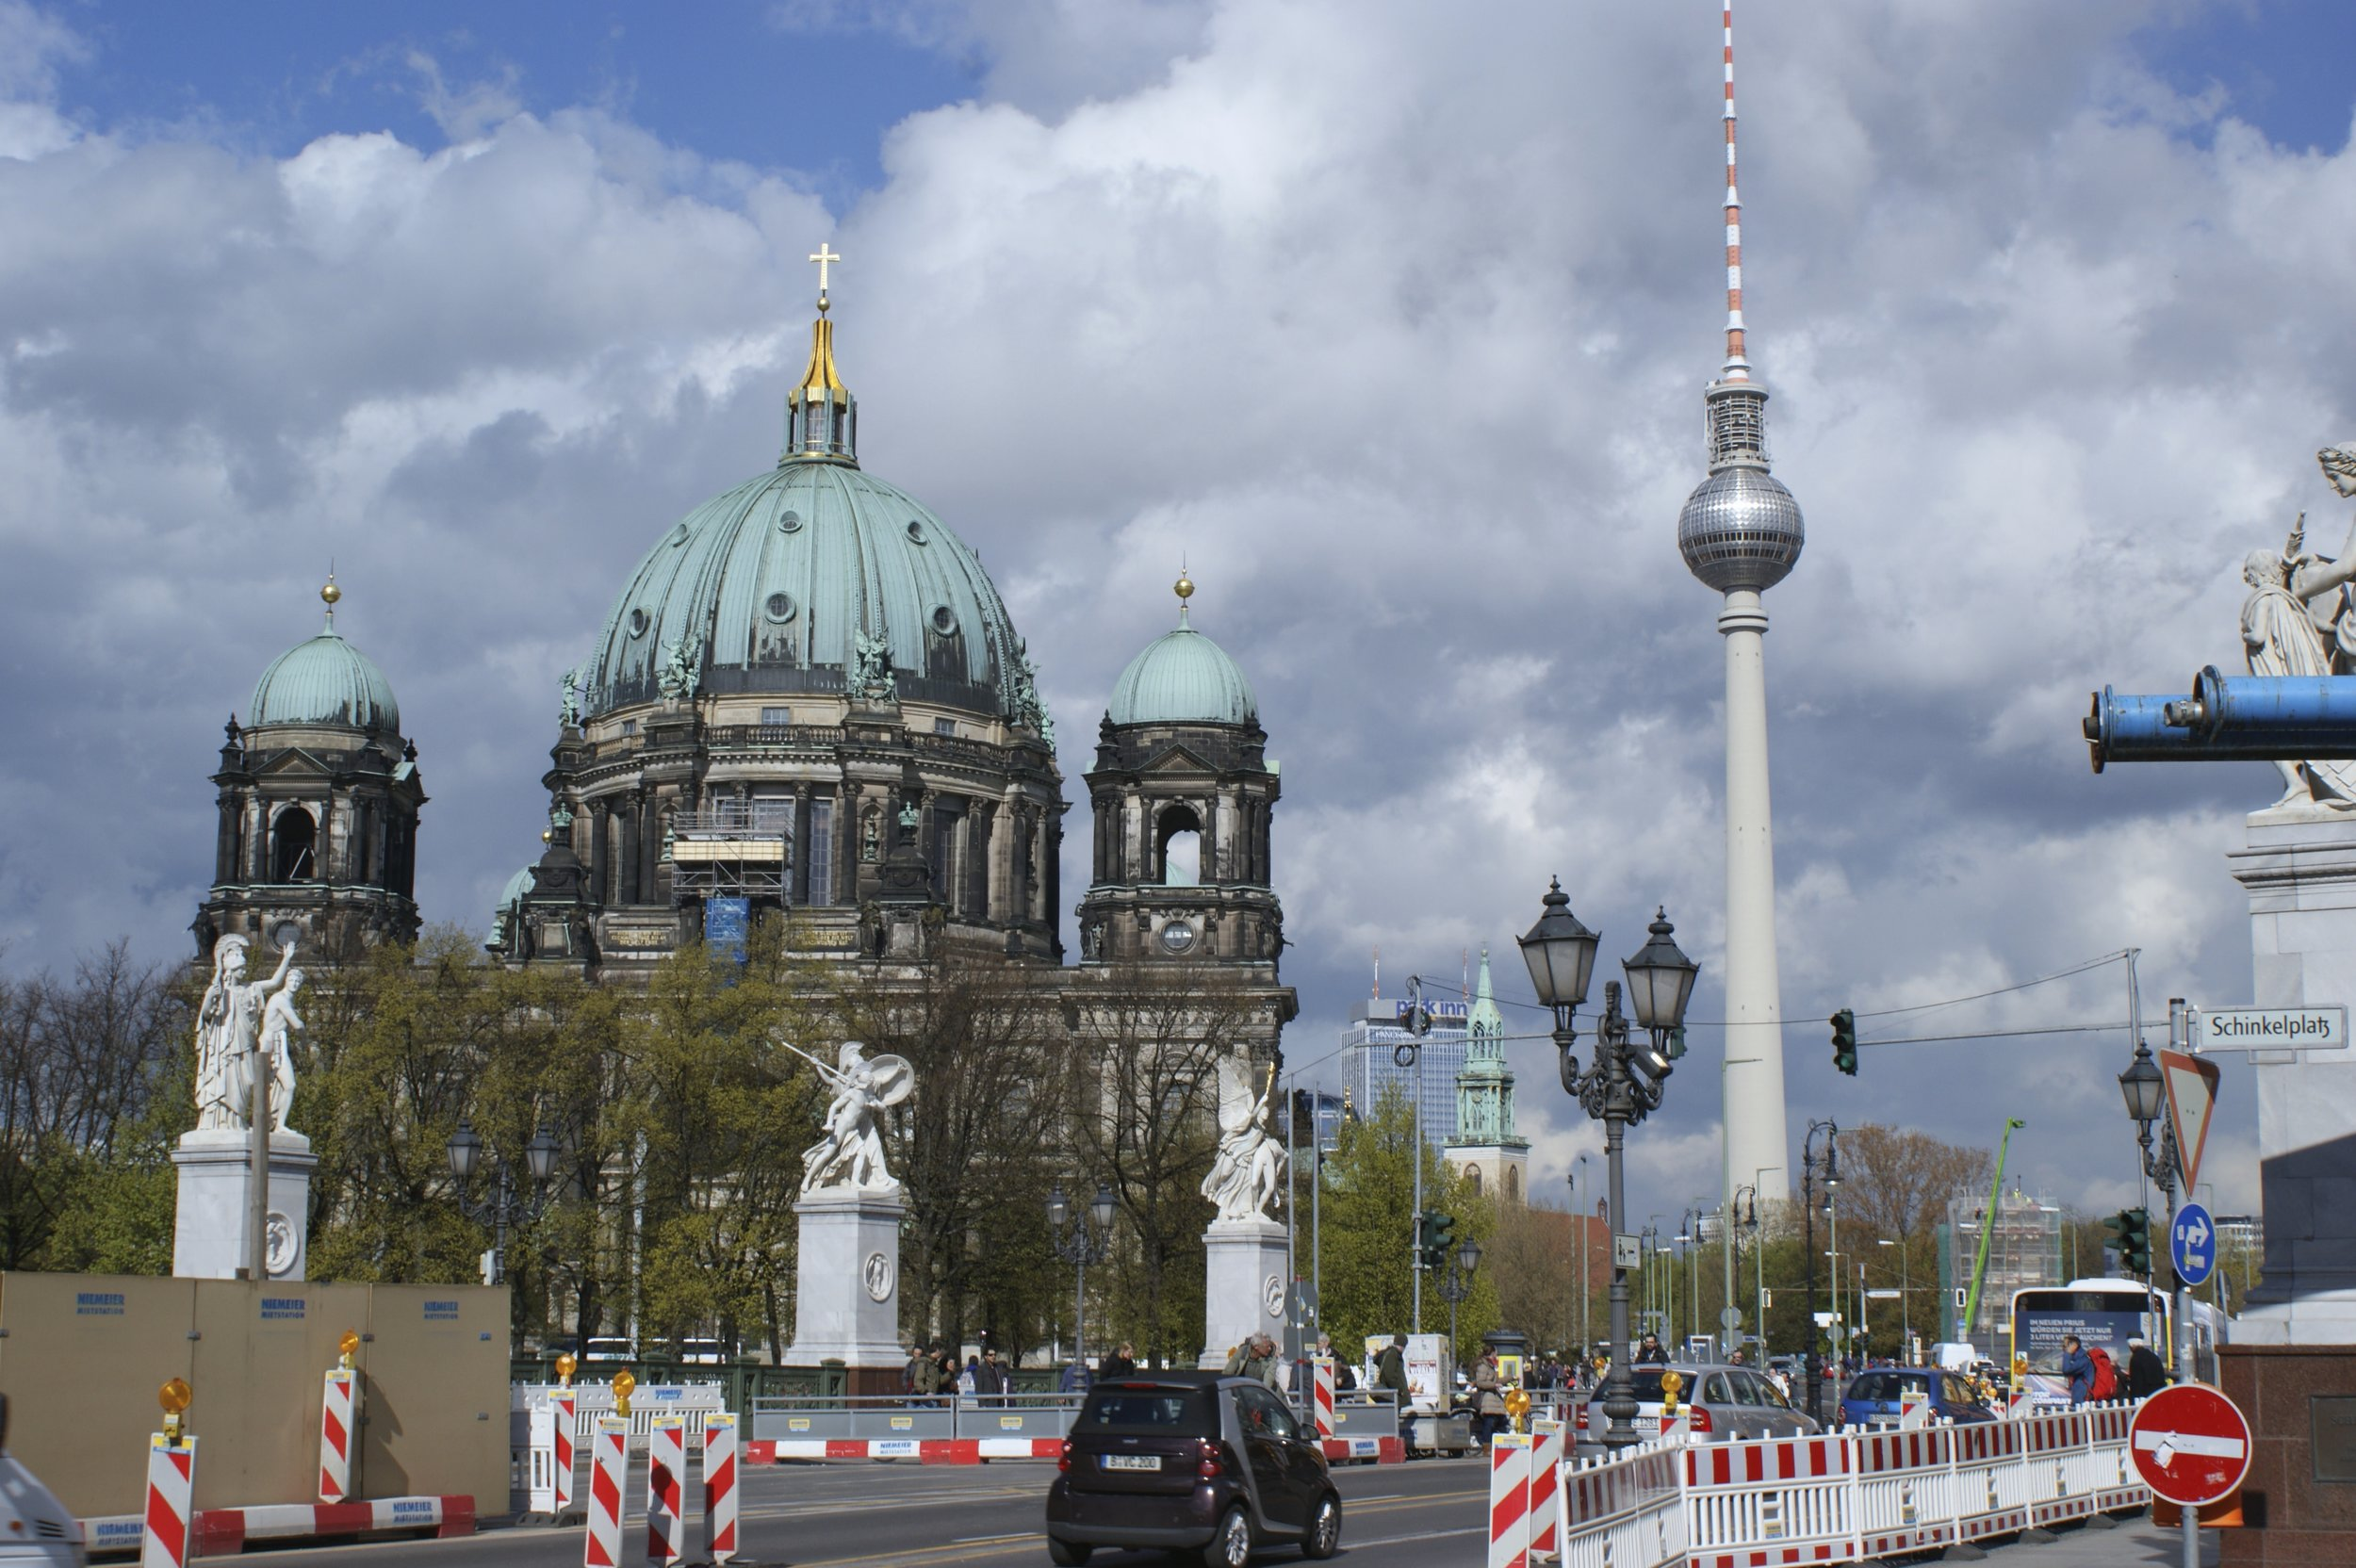 Berlin Cathedral Church / Berlin, Germany | Copyright Alexis Rockley, Local (Tourist)